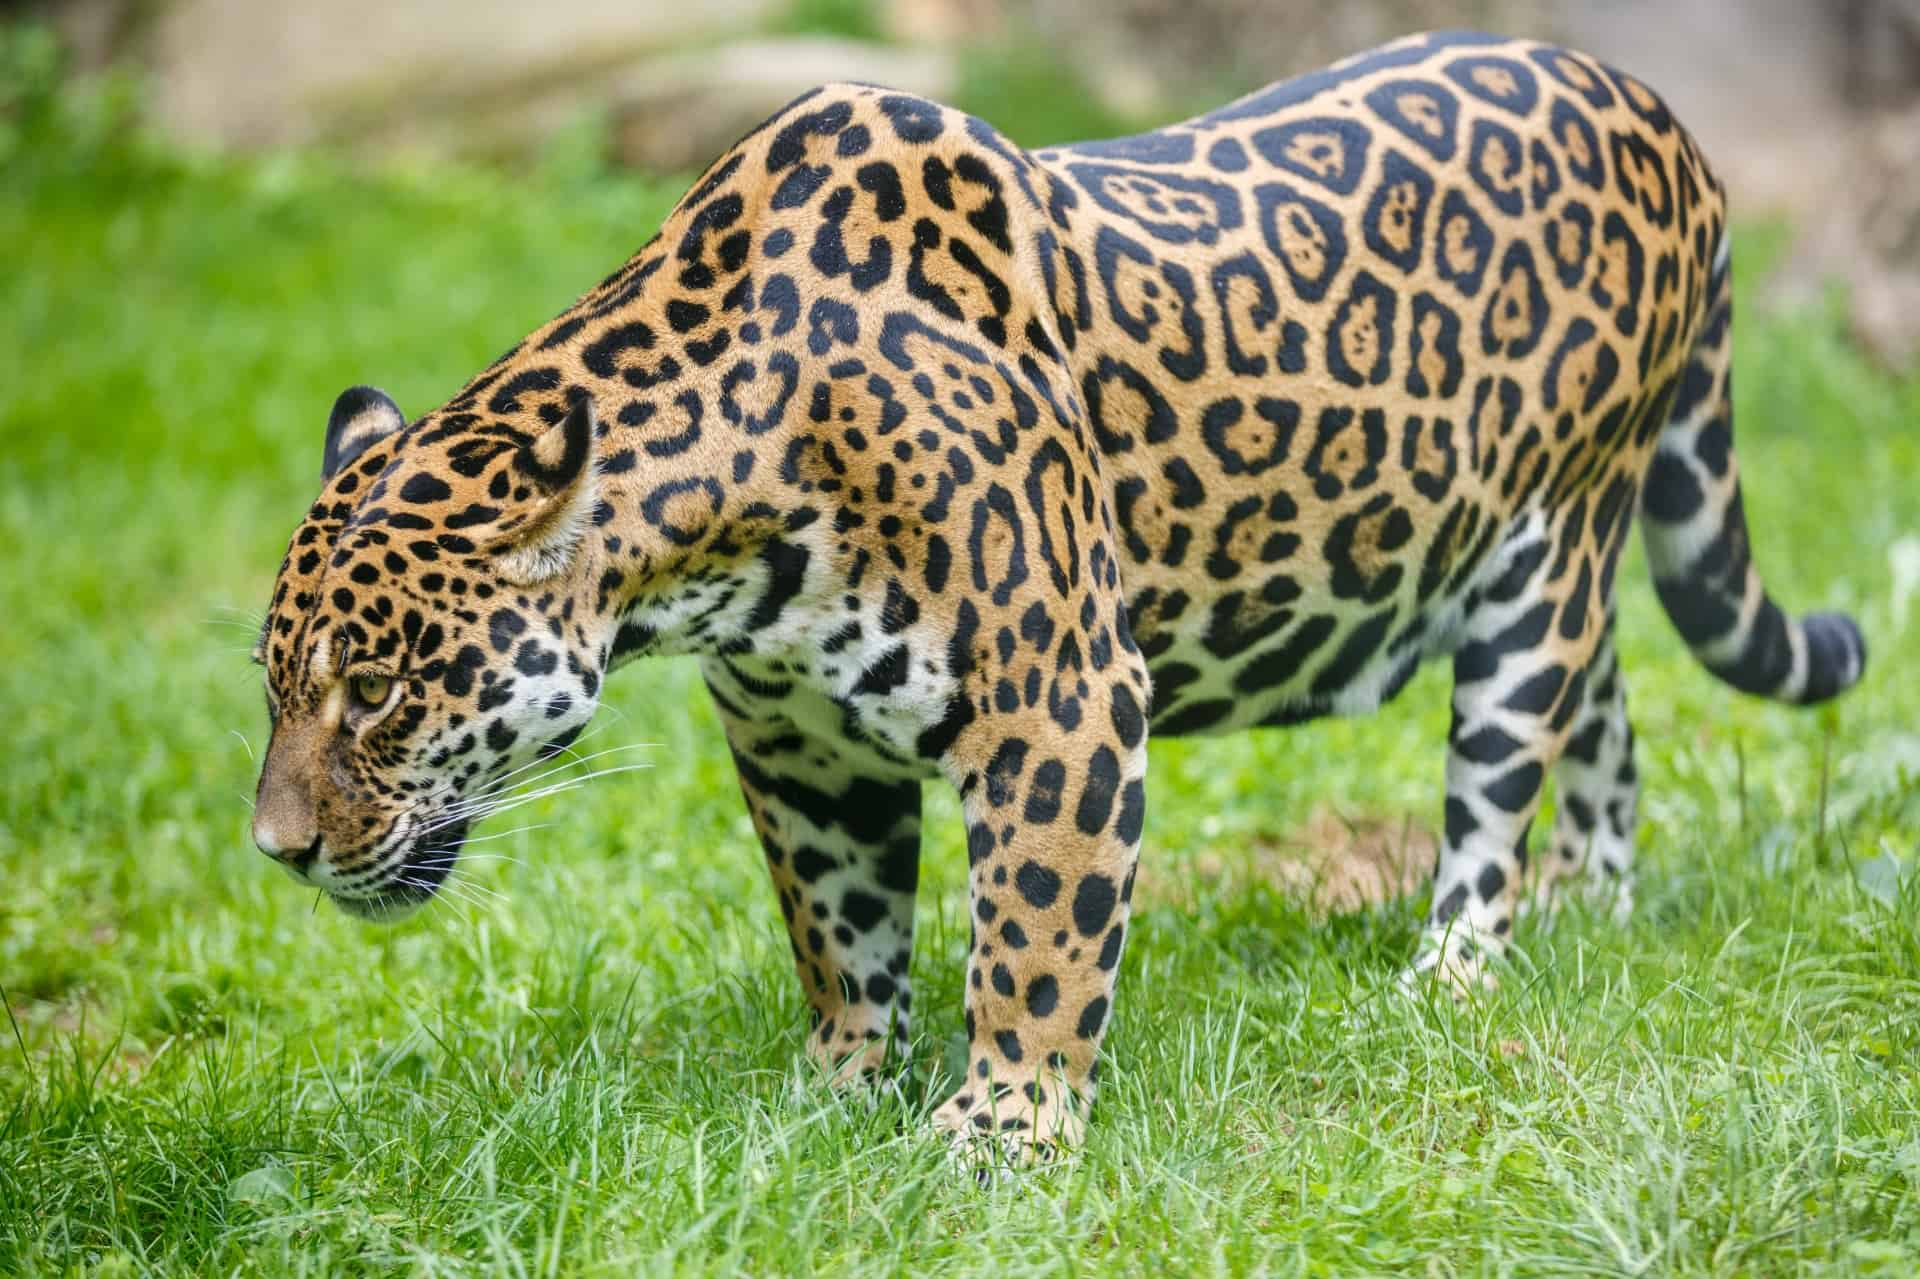 What is the size, length and shoulder height of a Jaguar?